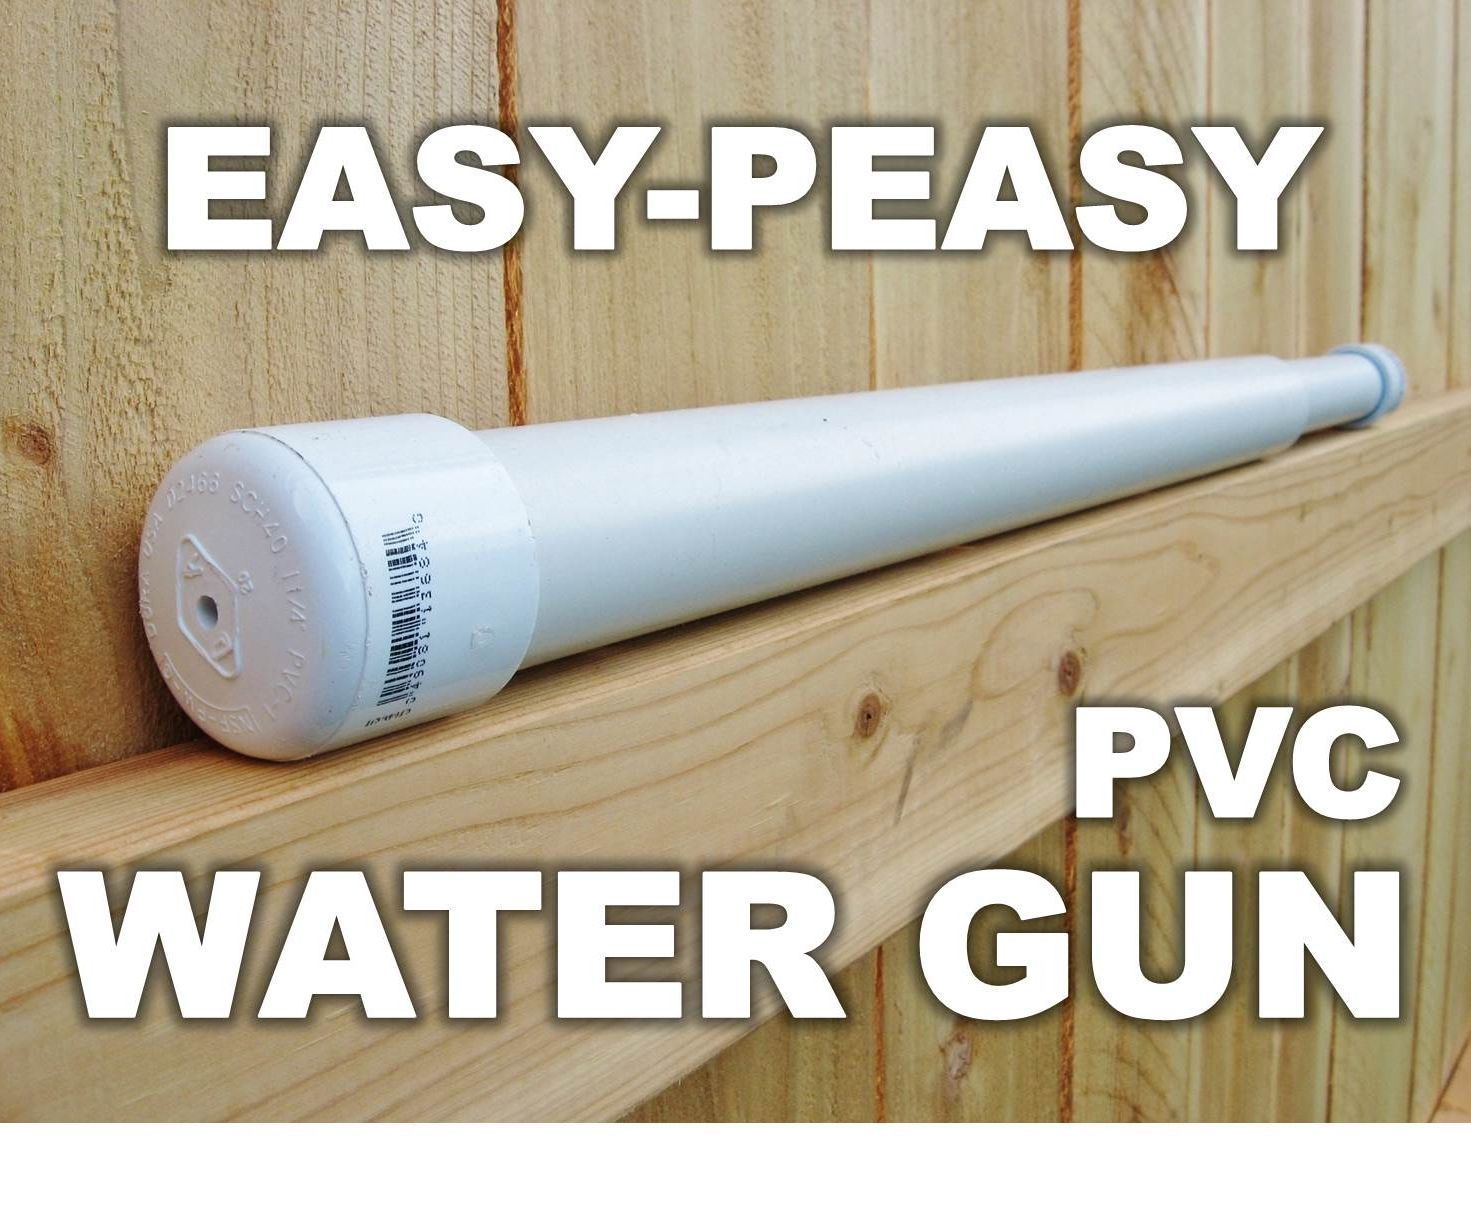 Easy peasy pvc water gun guns water and pvc projects there are a handful of do it yourself pvc water guns on the internet solutioingenieria Choice Image